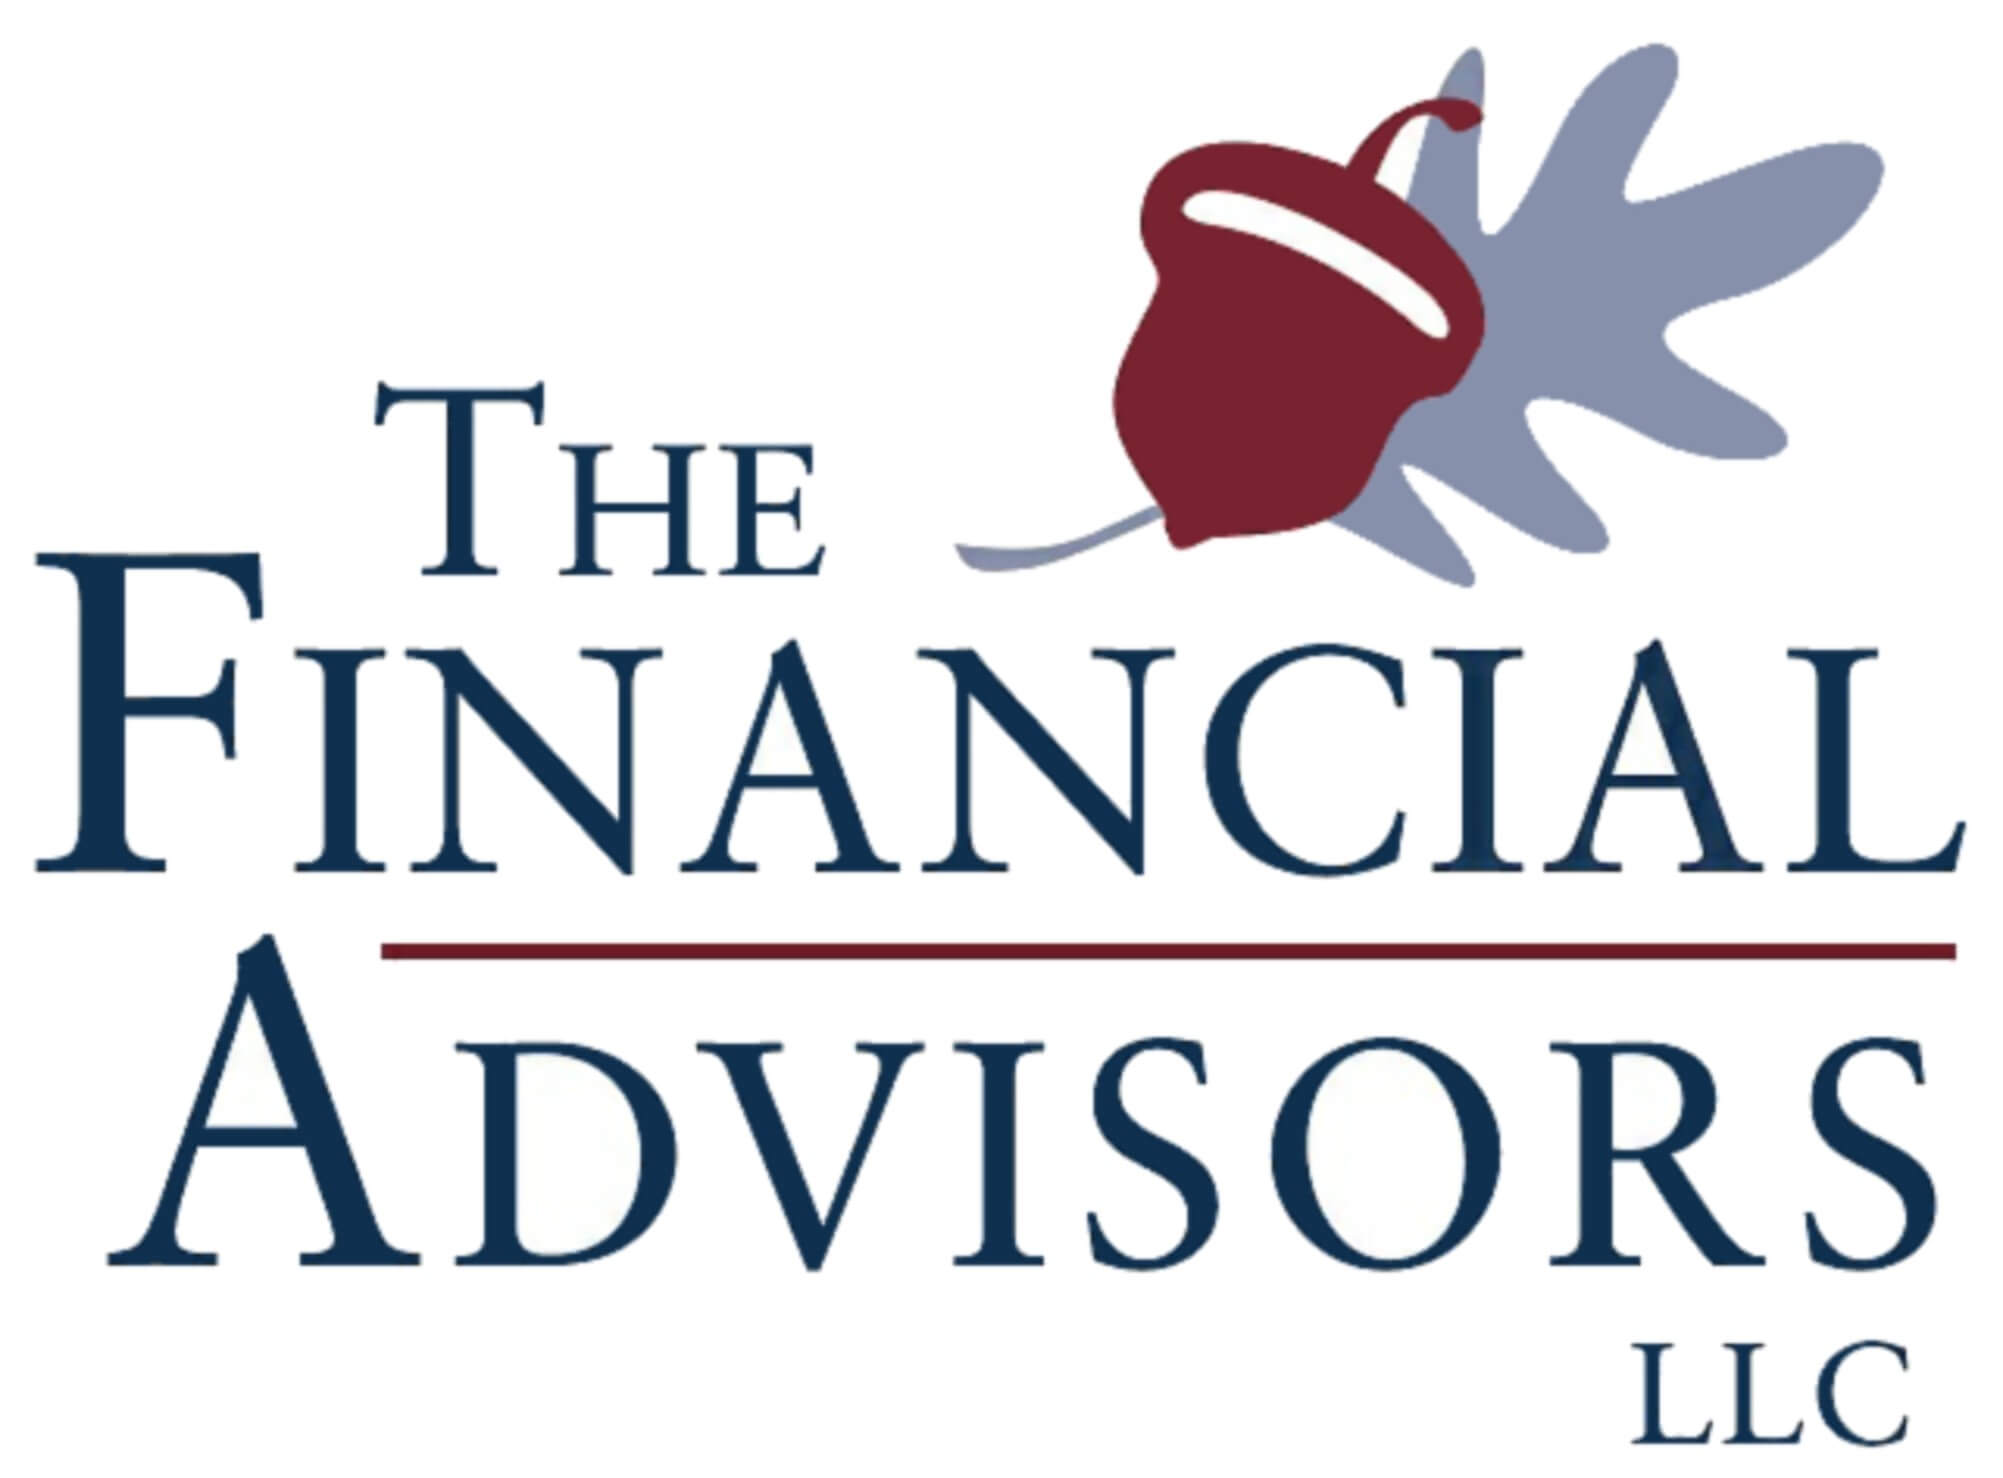 The Financial Advisors